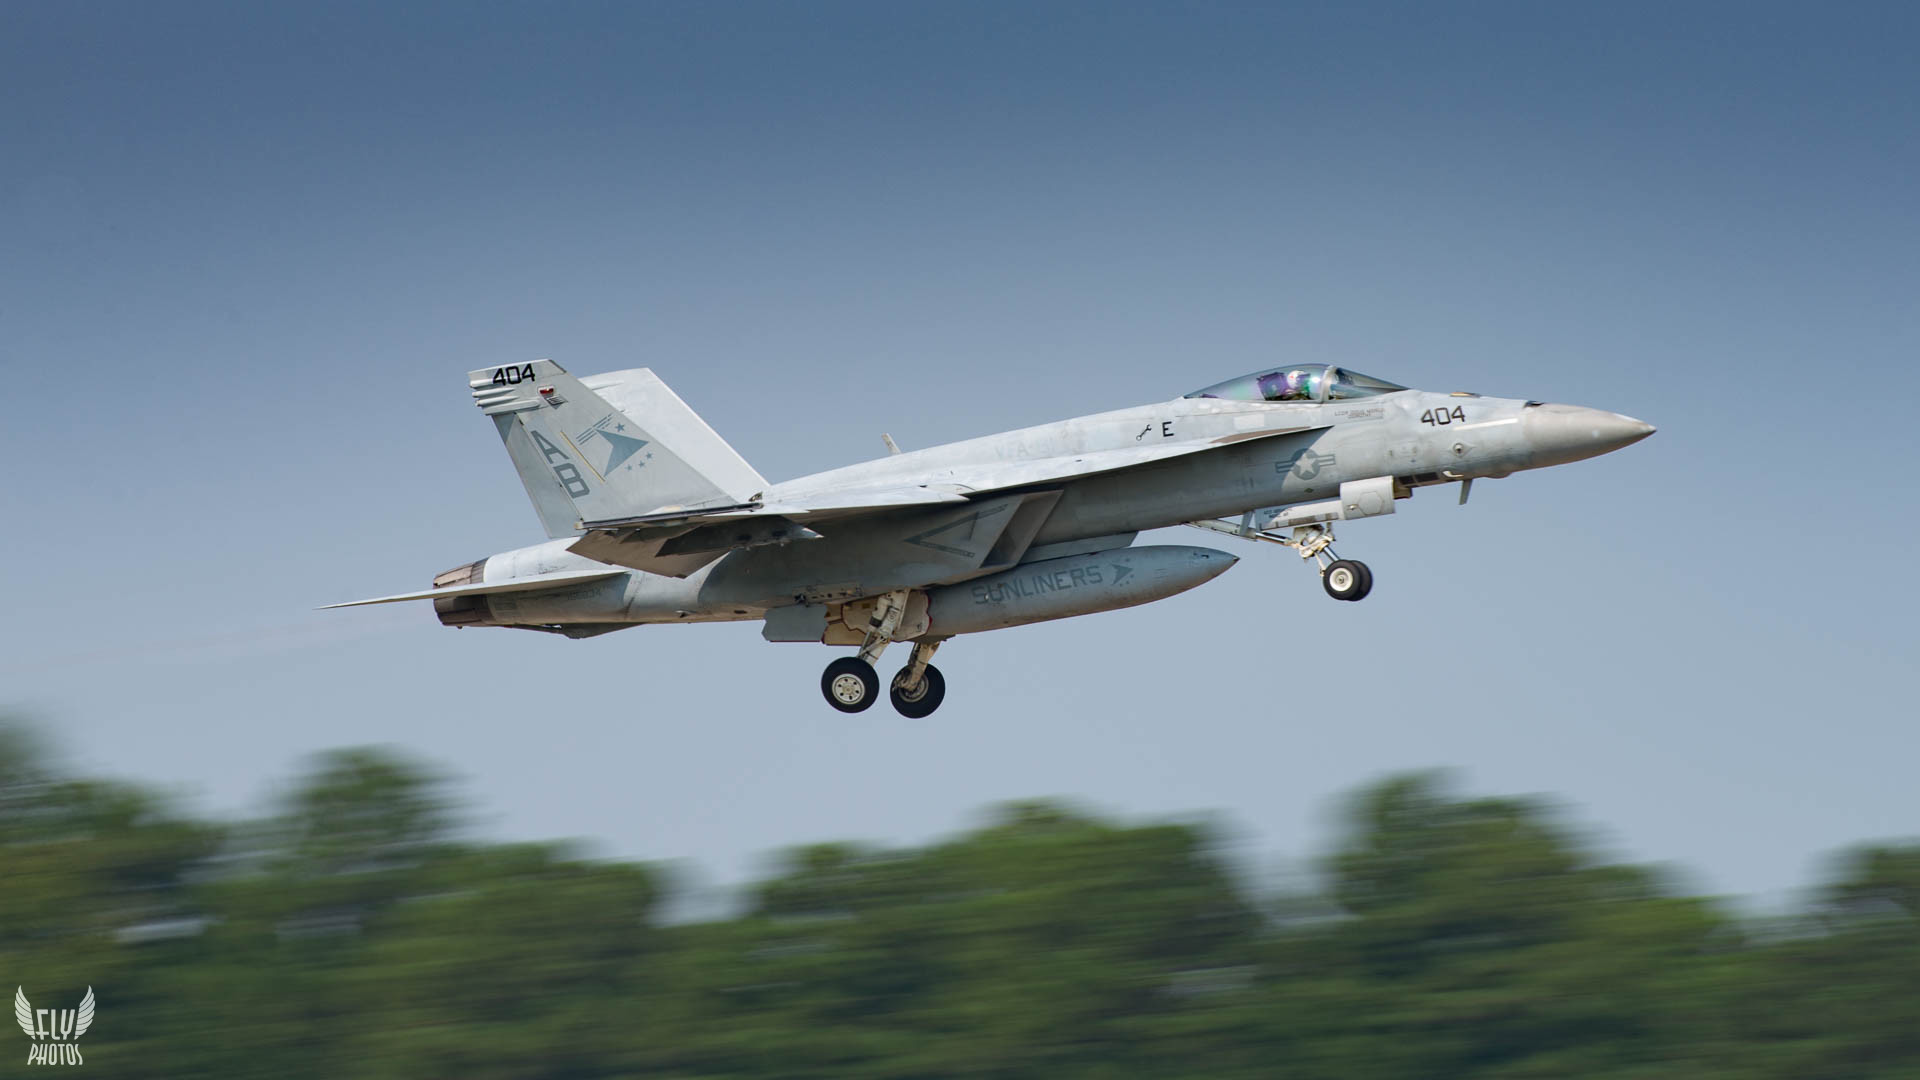 Photo of the day: Sunliners at NAS Oceana